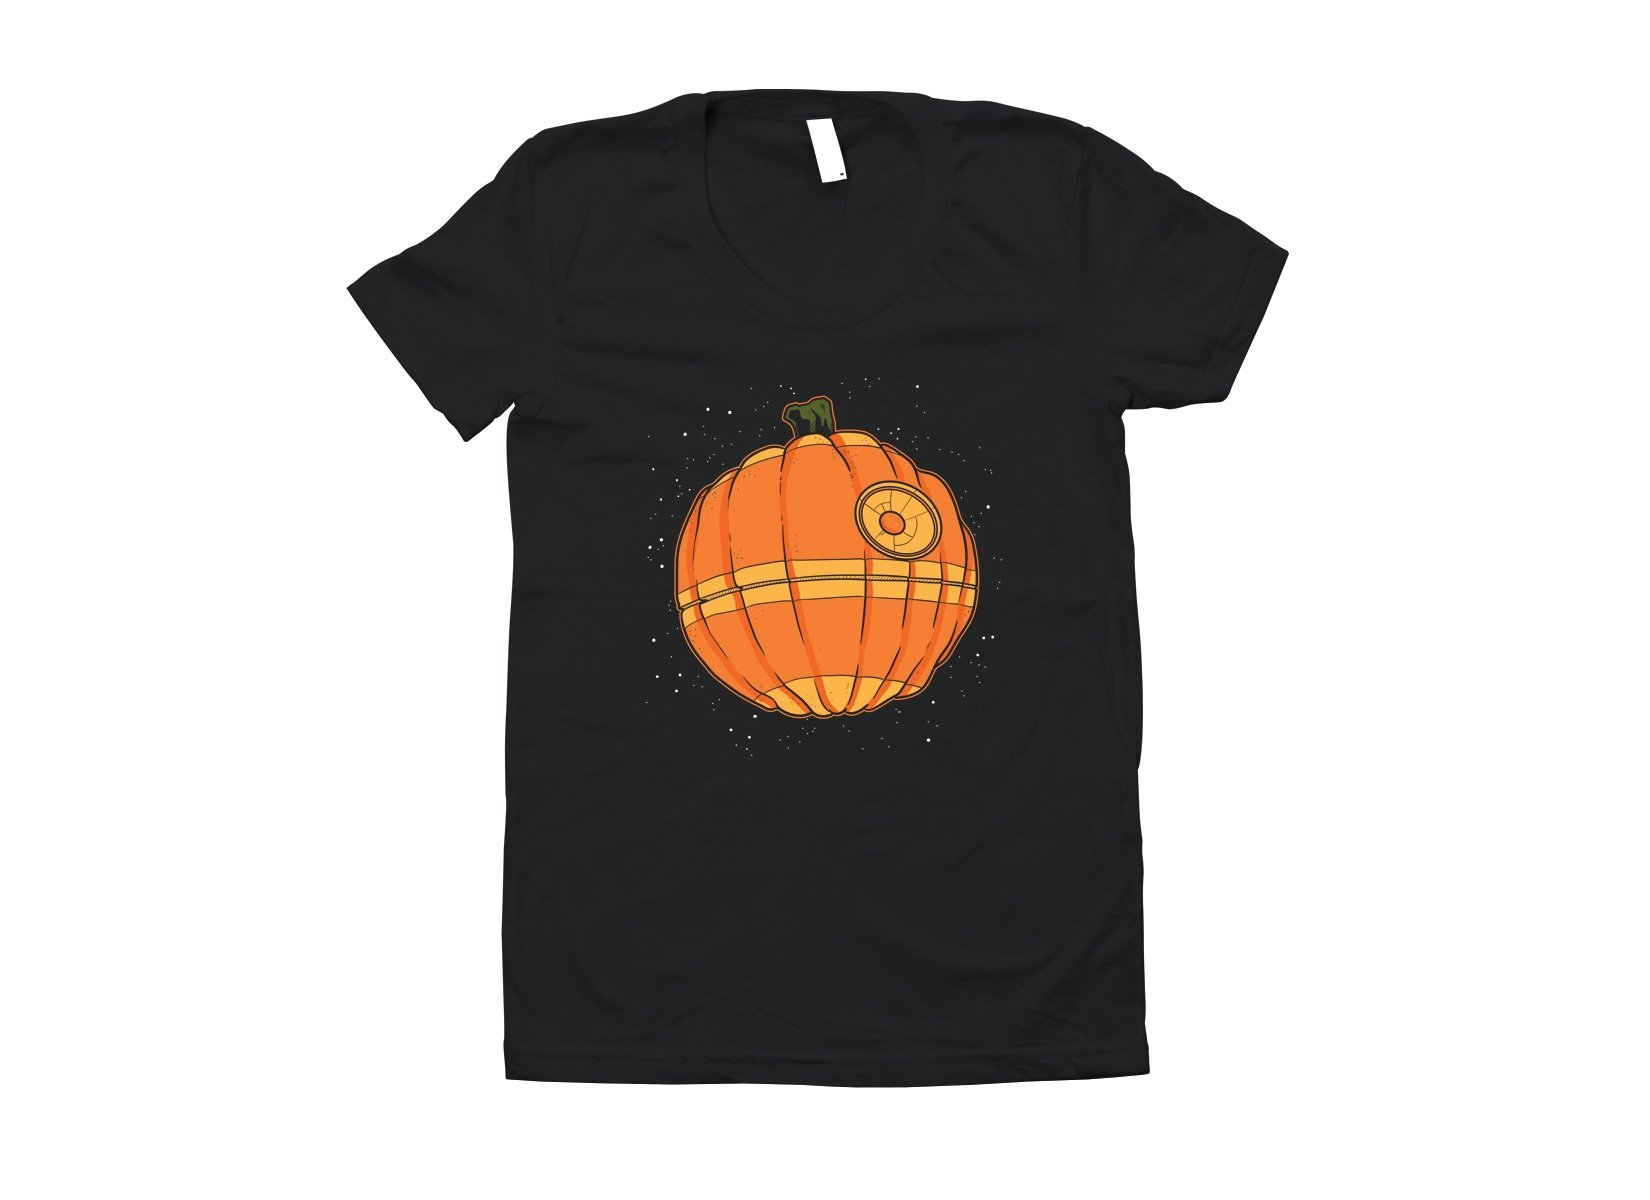 That's No Pumpkin on Juniors T-Shirt